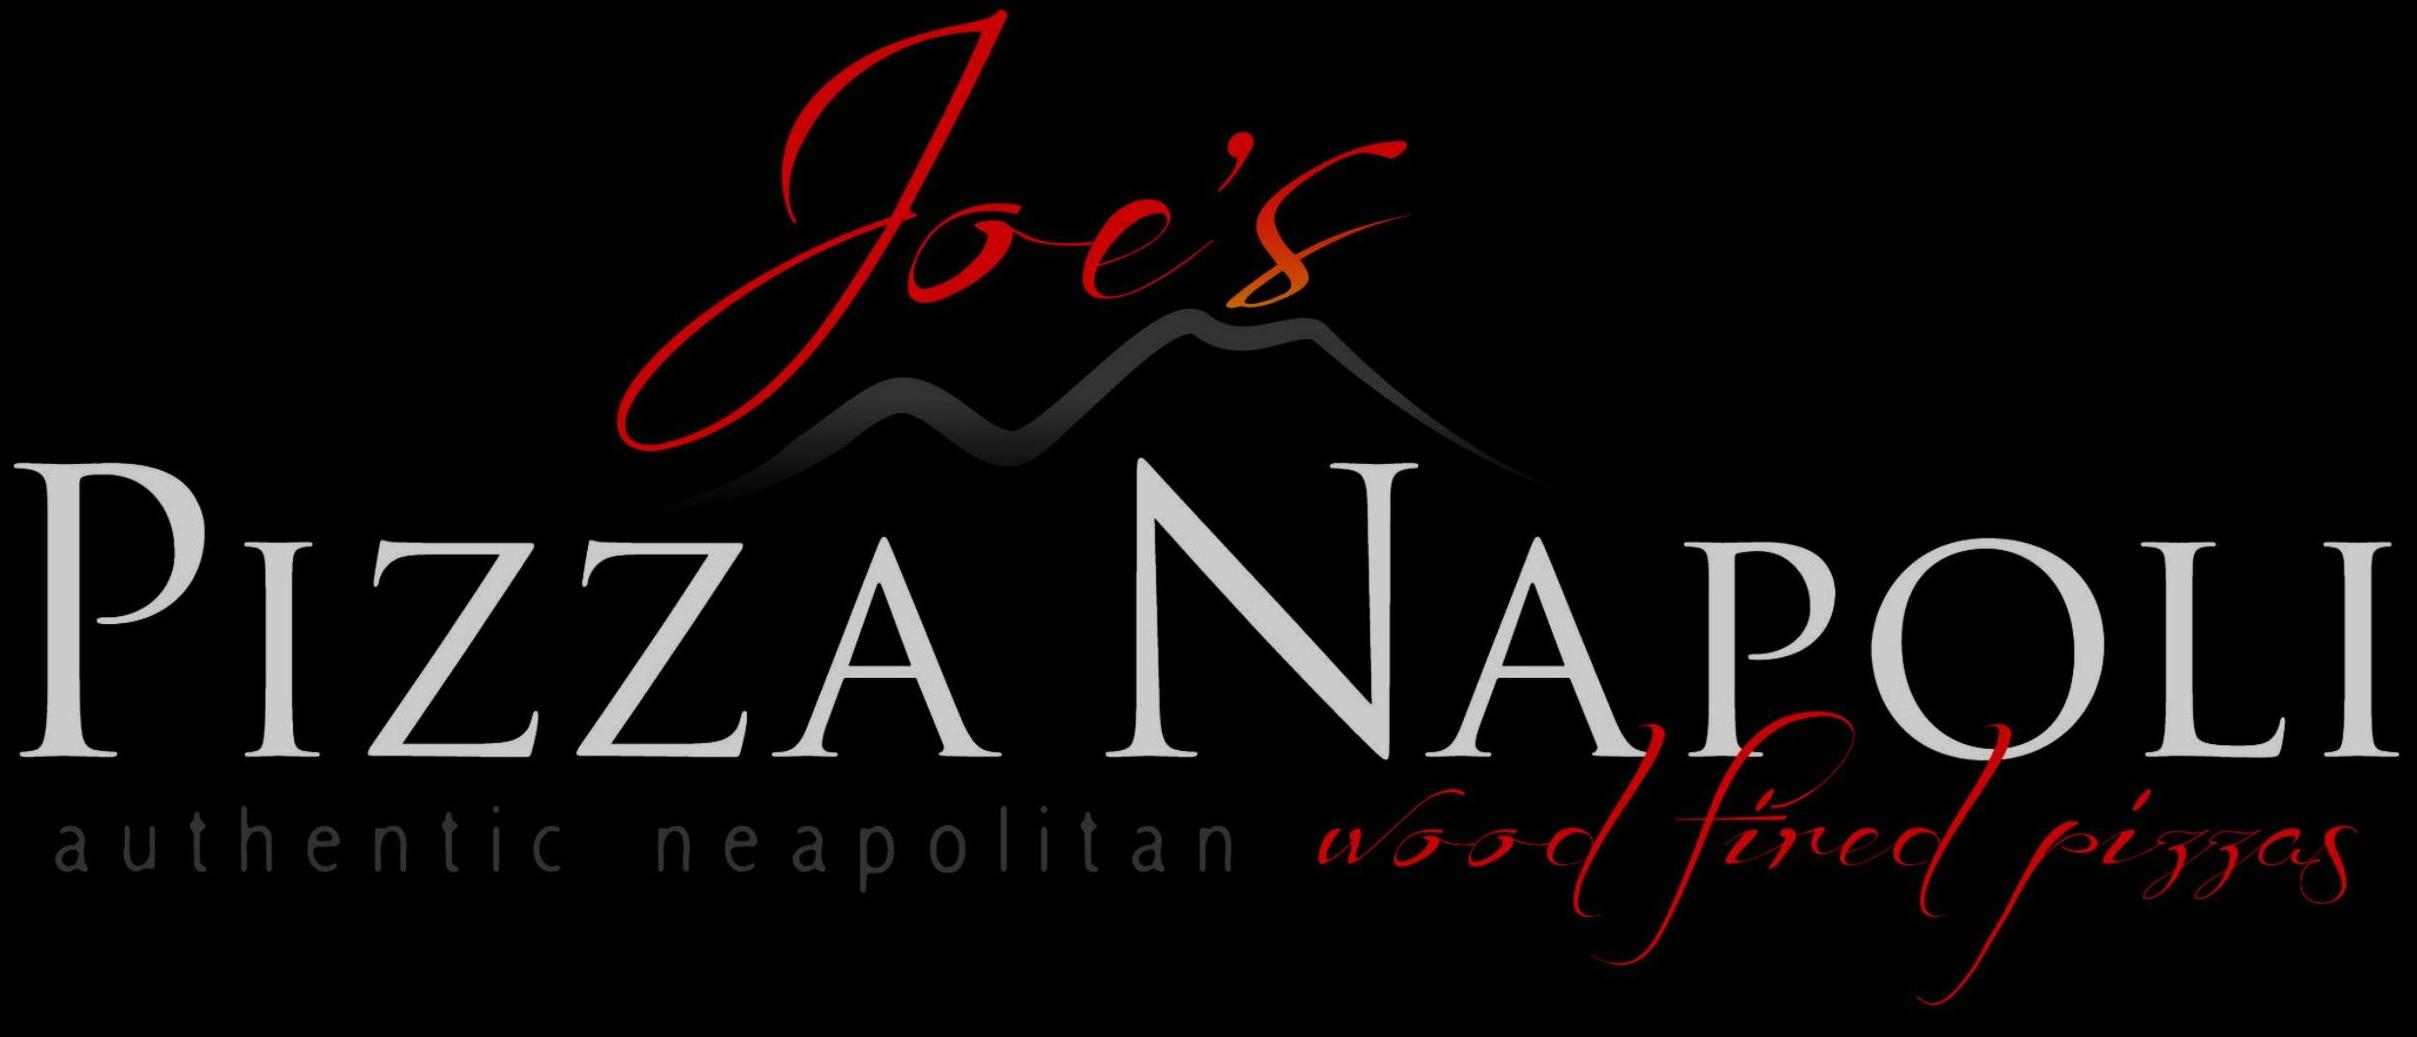 Joe S Pizza Napoli Menu In Cincinnati Ohio Usa